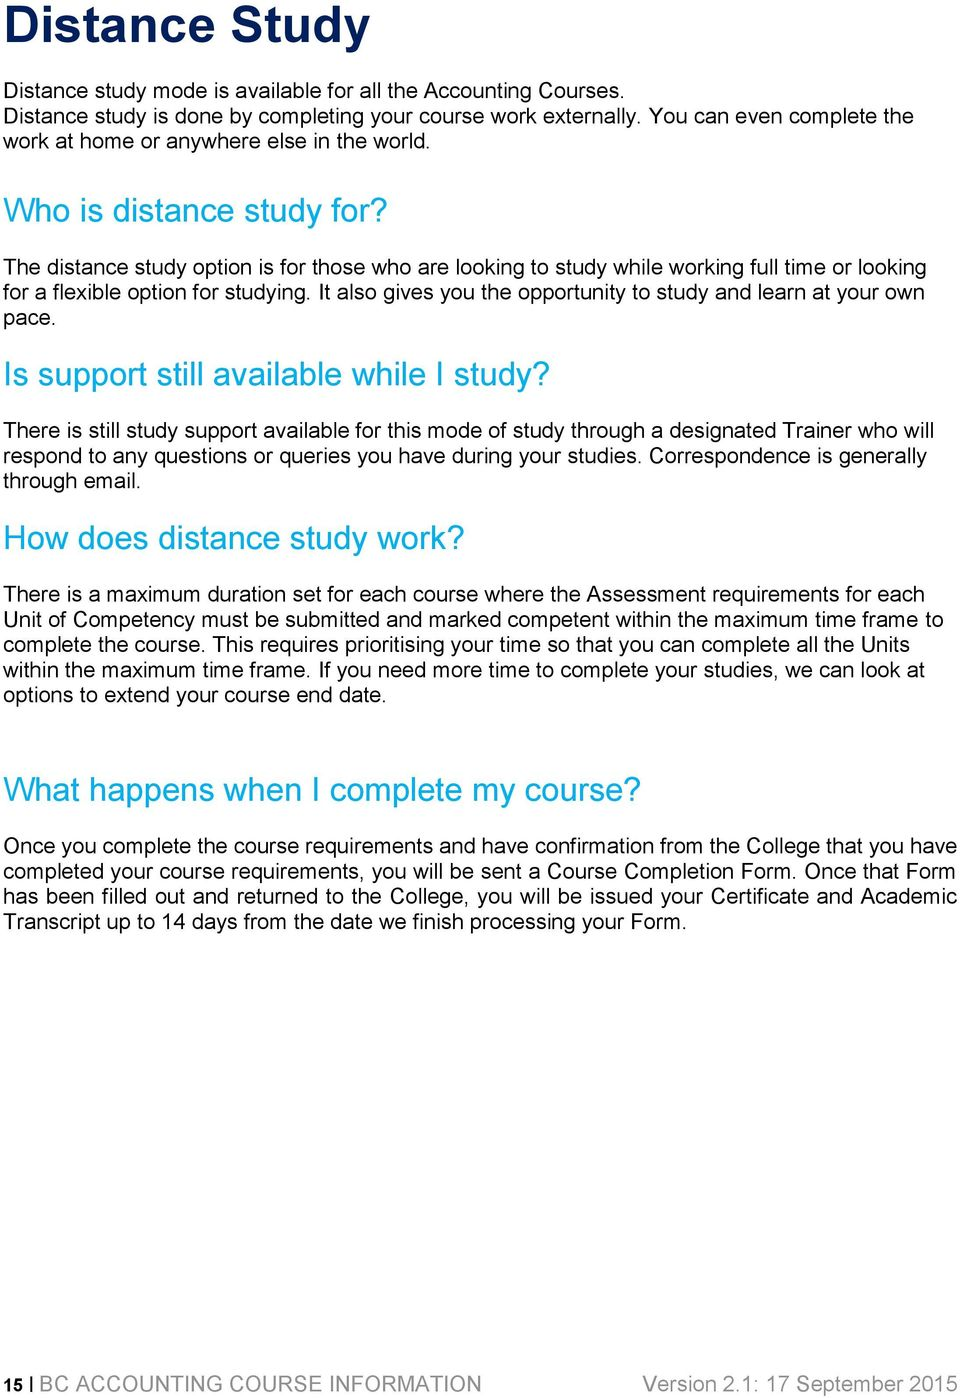 The distance study option is for those who are looking to study while working full time or looking for a flexible option for studying.